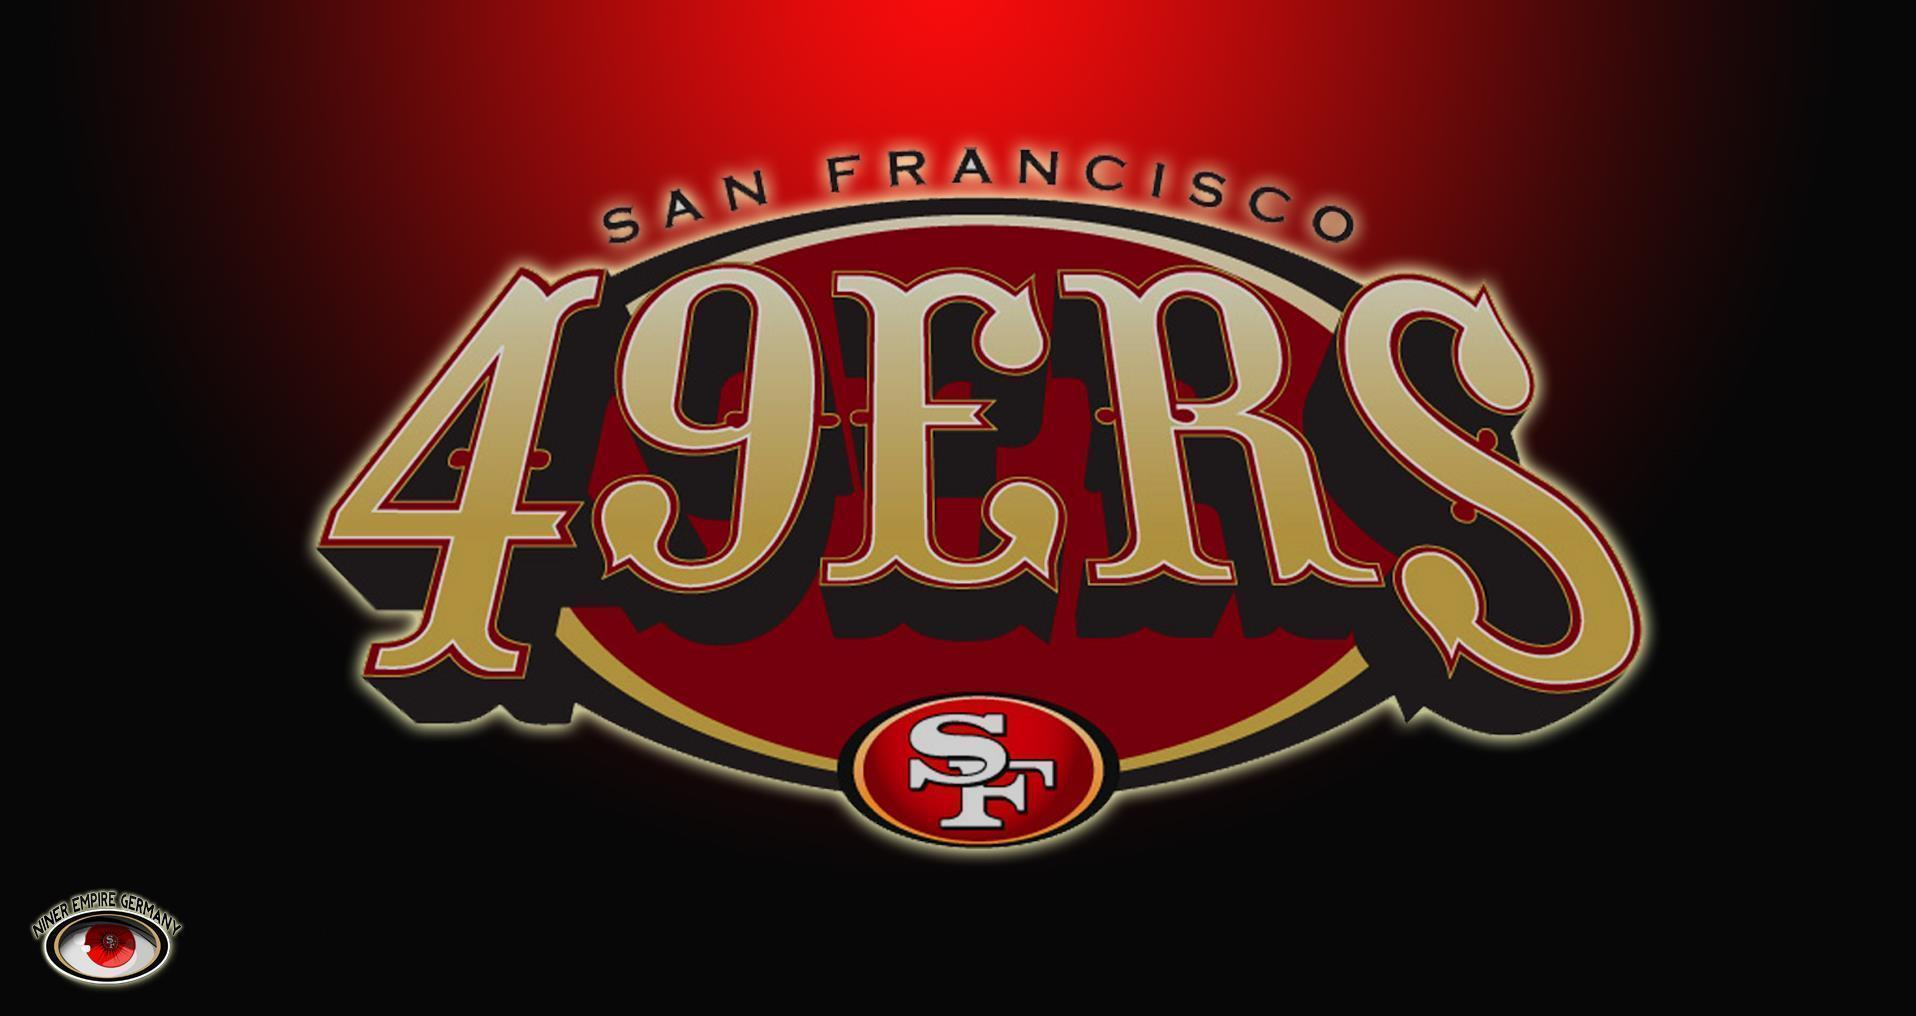 San francisco 49ers wallpapers wallpaper cave san francisco 49ers wallpaper 2014 sky hd wallpaper voltagebd